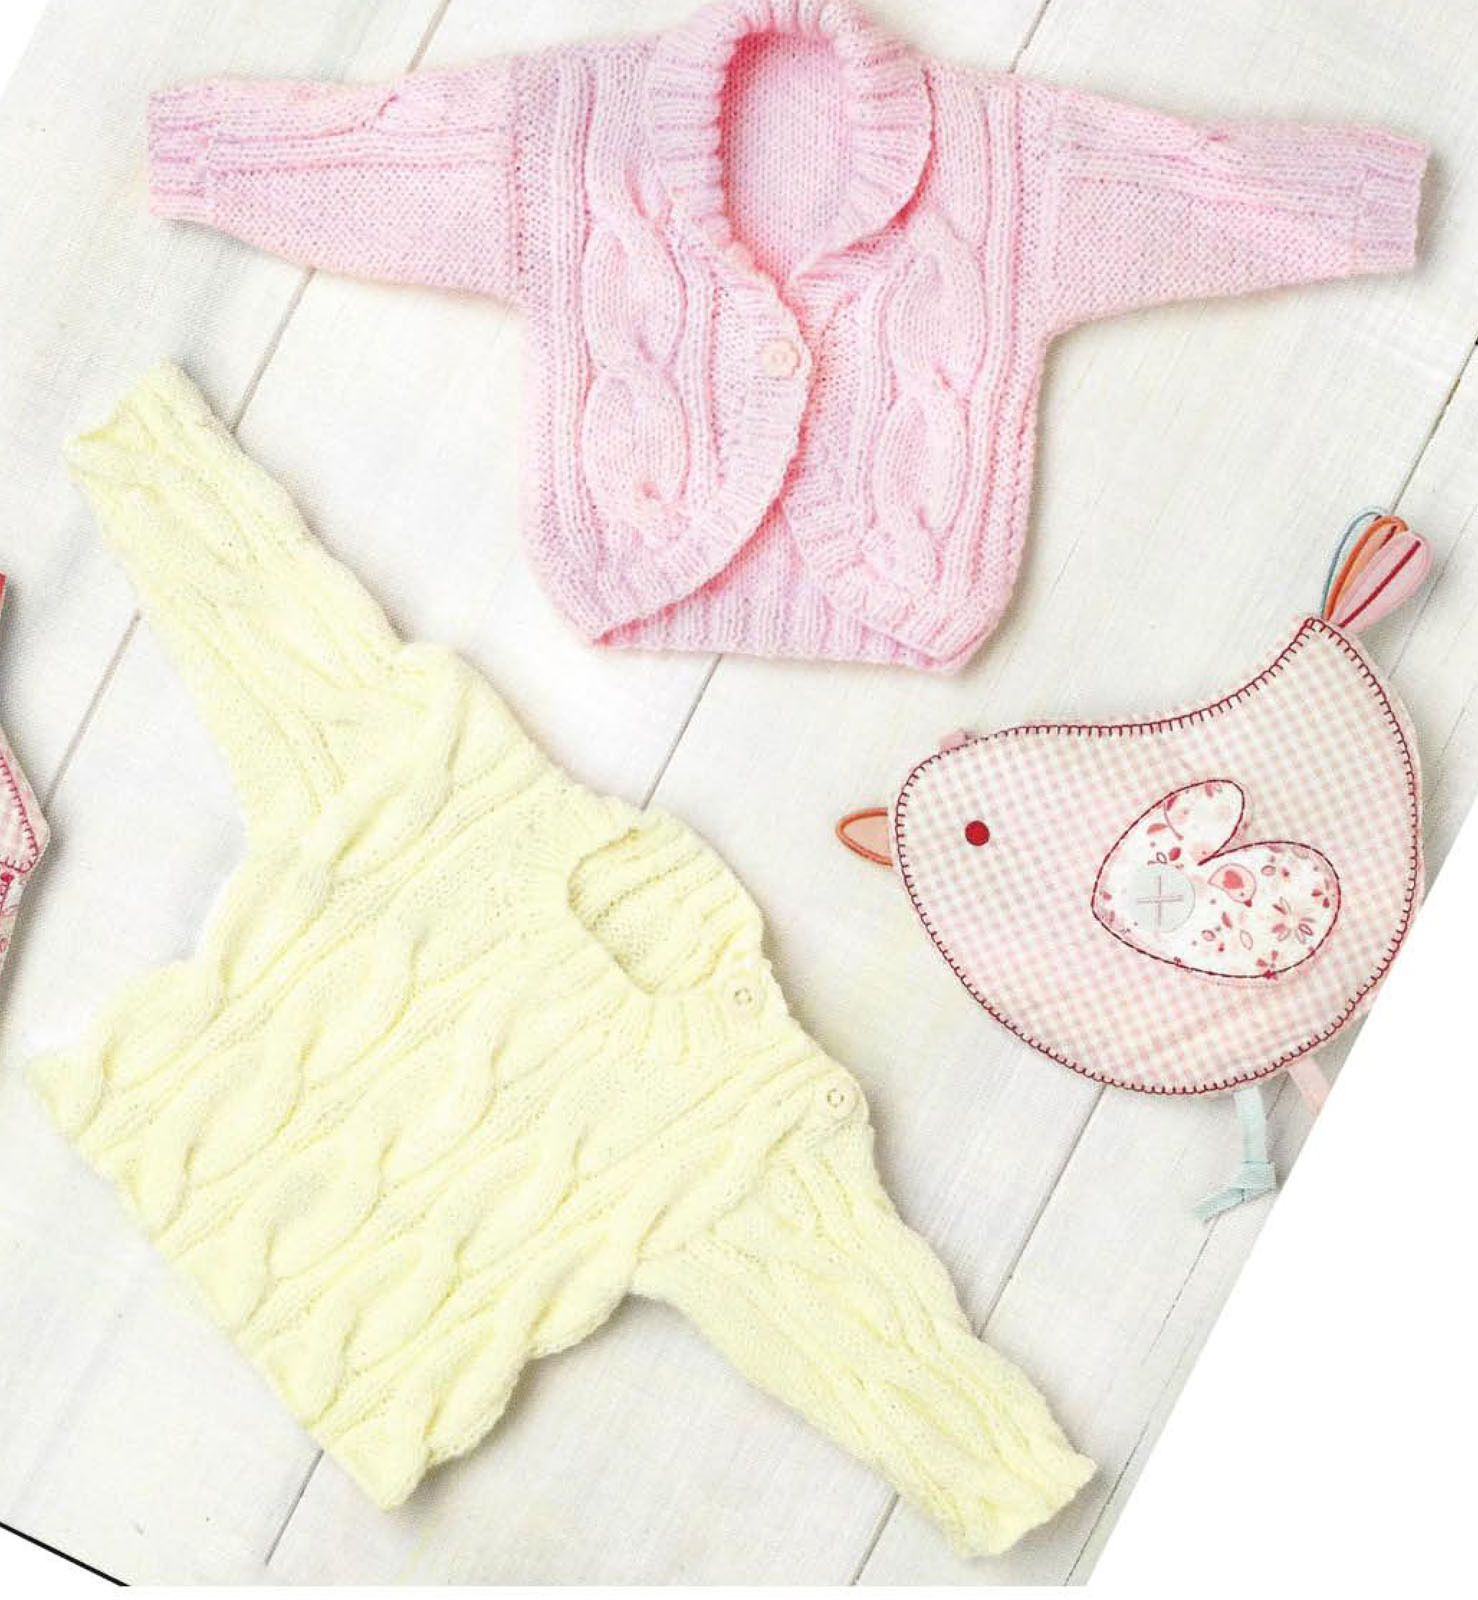 Knitting pattern 1222 inch doll premature baby cardigans sweater knitting pattern 1222 inch doll premature baby cardigans sweater 265 bankloansurffo Image collections